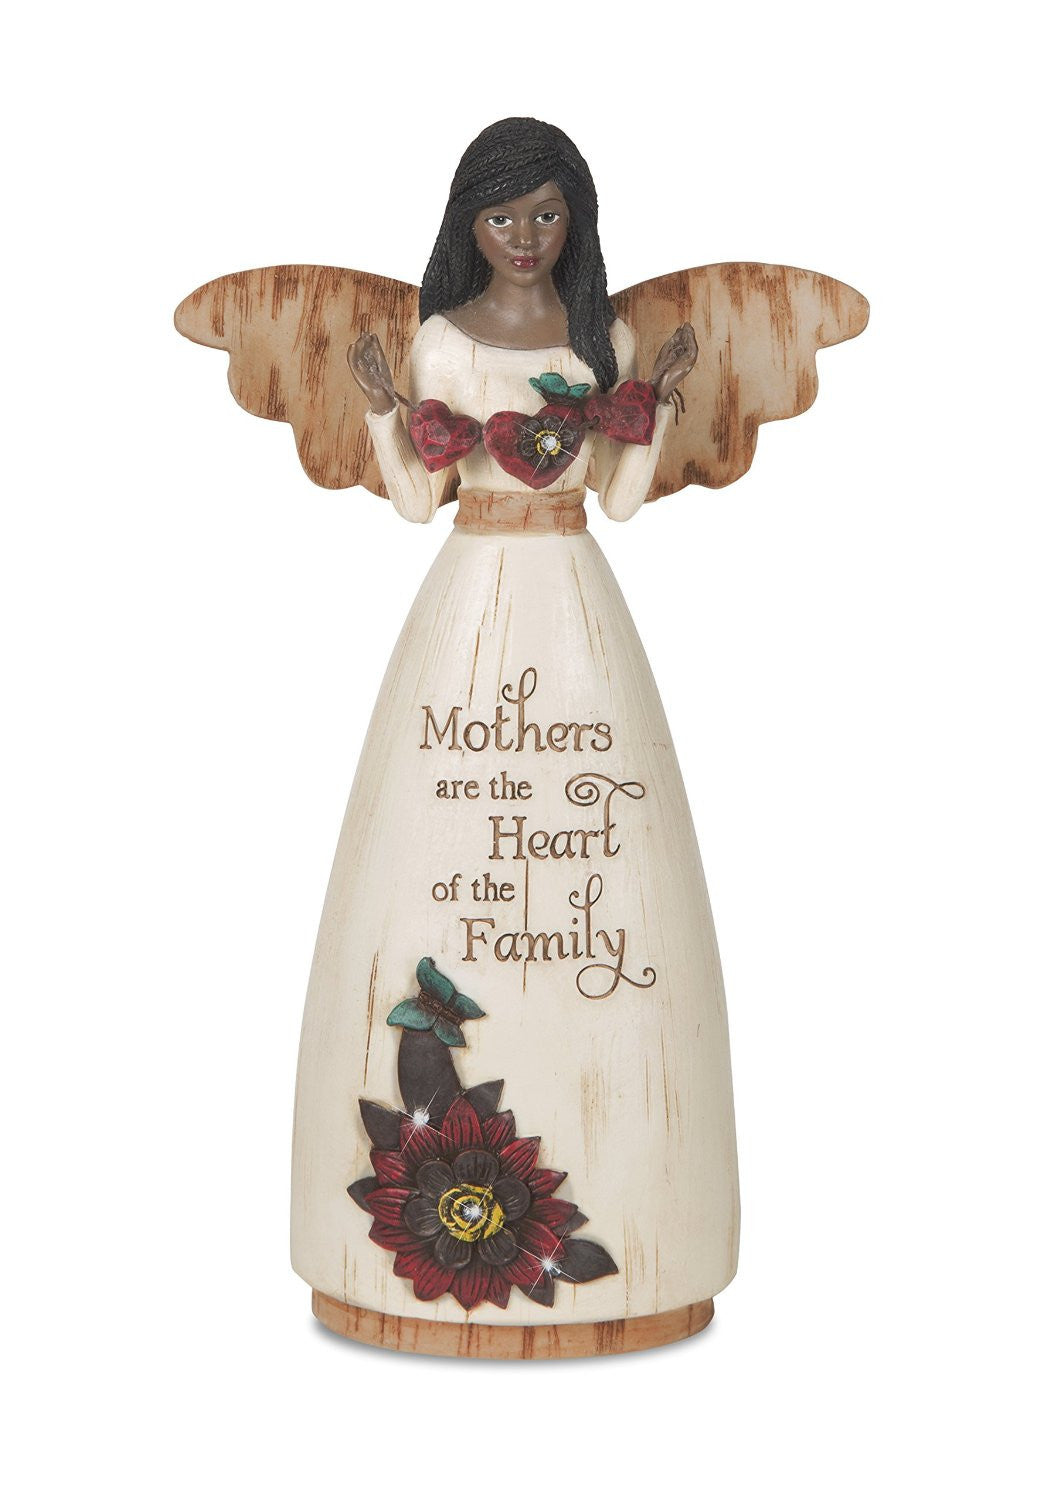 African American Mother Angel Figurine with Hearts: Simple Spirits Collection by Pavilion Gifts